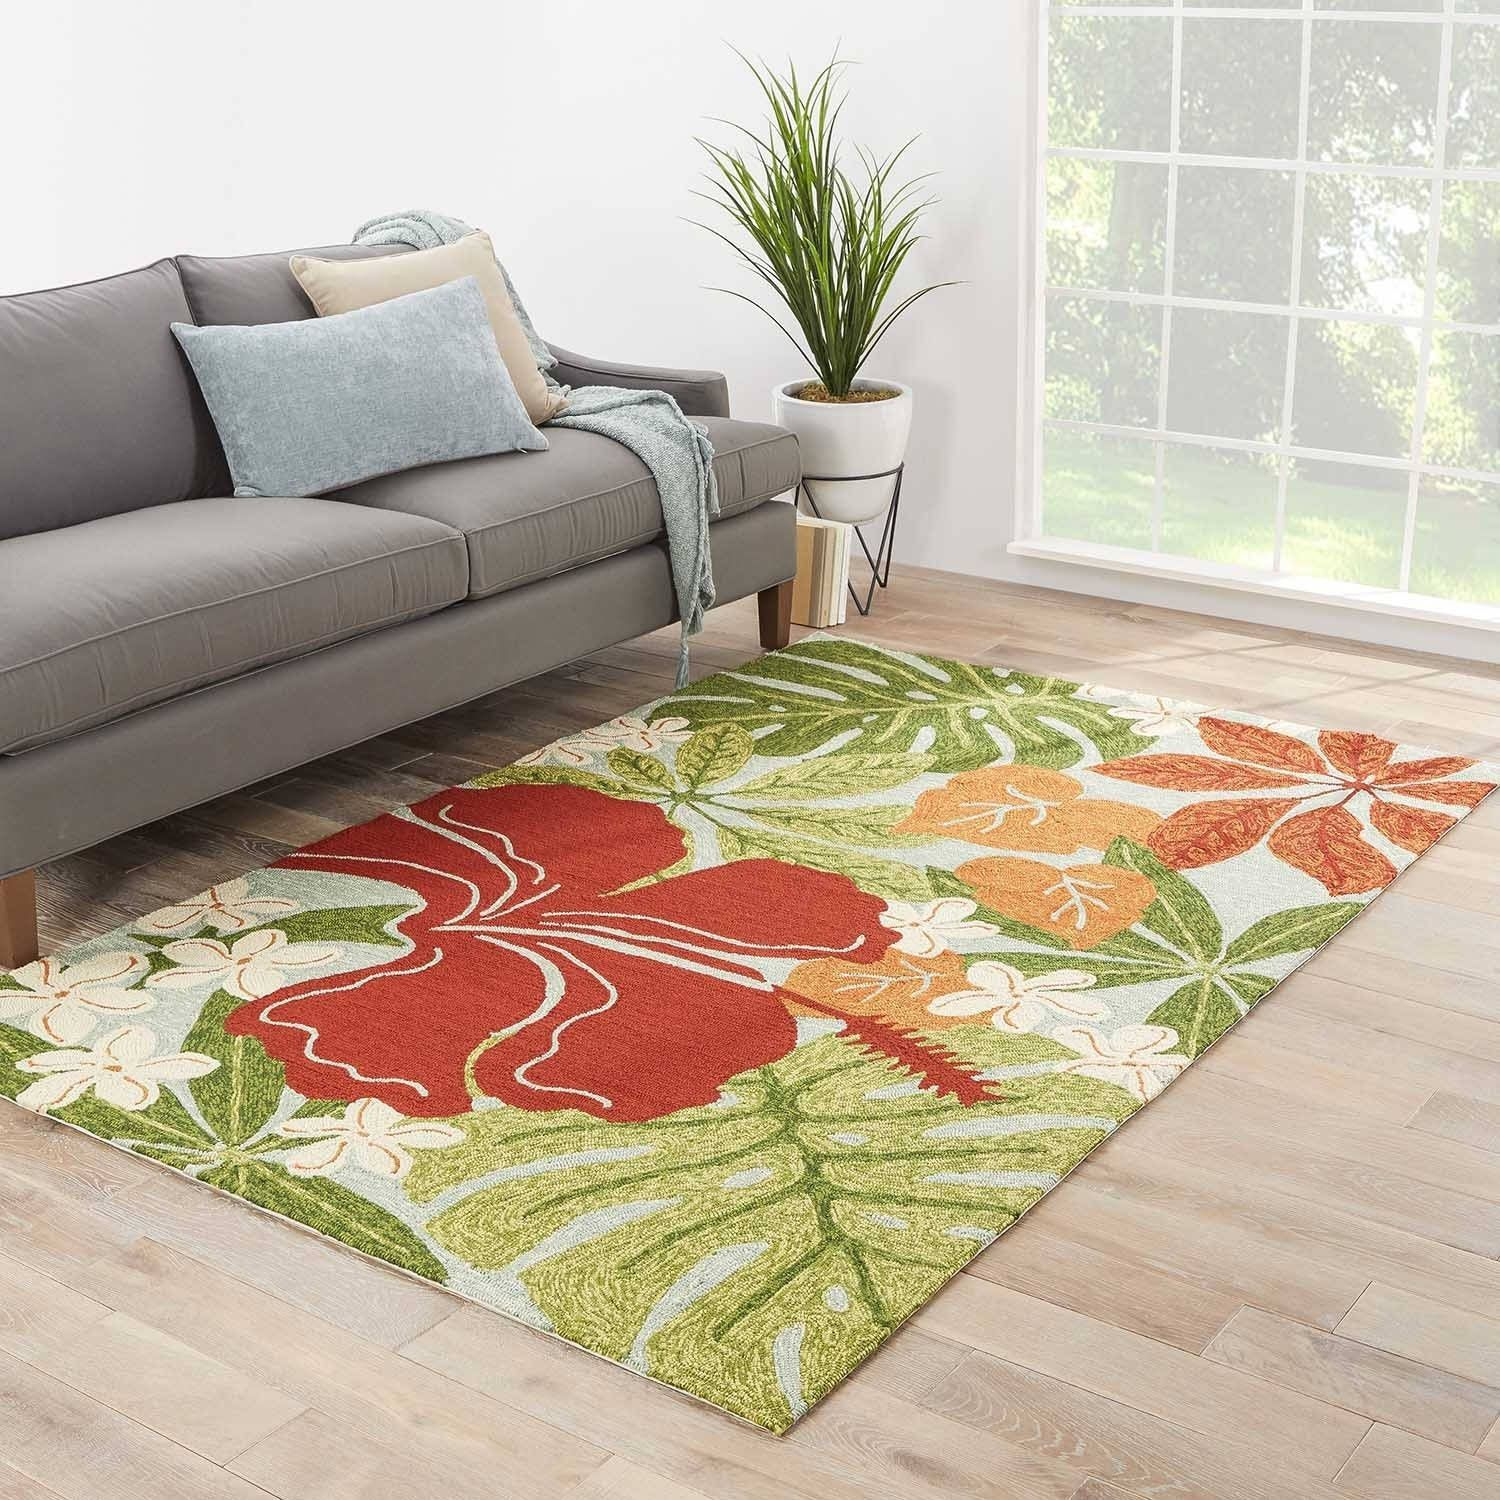 Kahiwa Indoor Outdoor Floral Multicolor Blue Area Rug 5 X 7 6